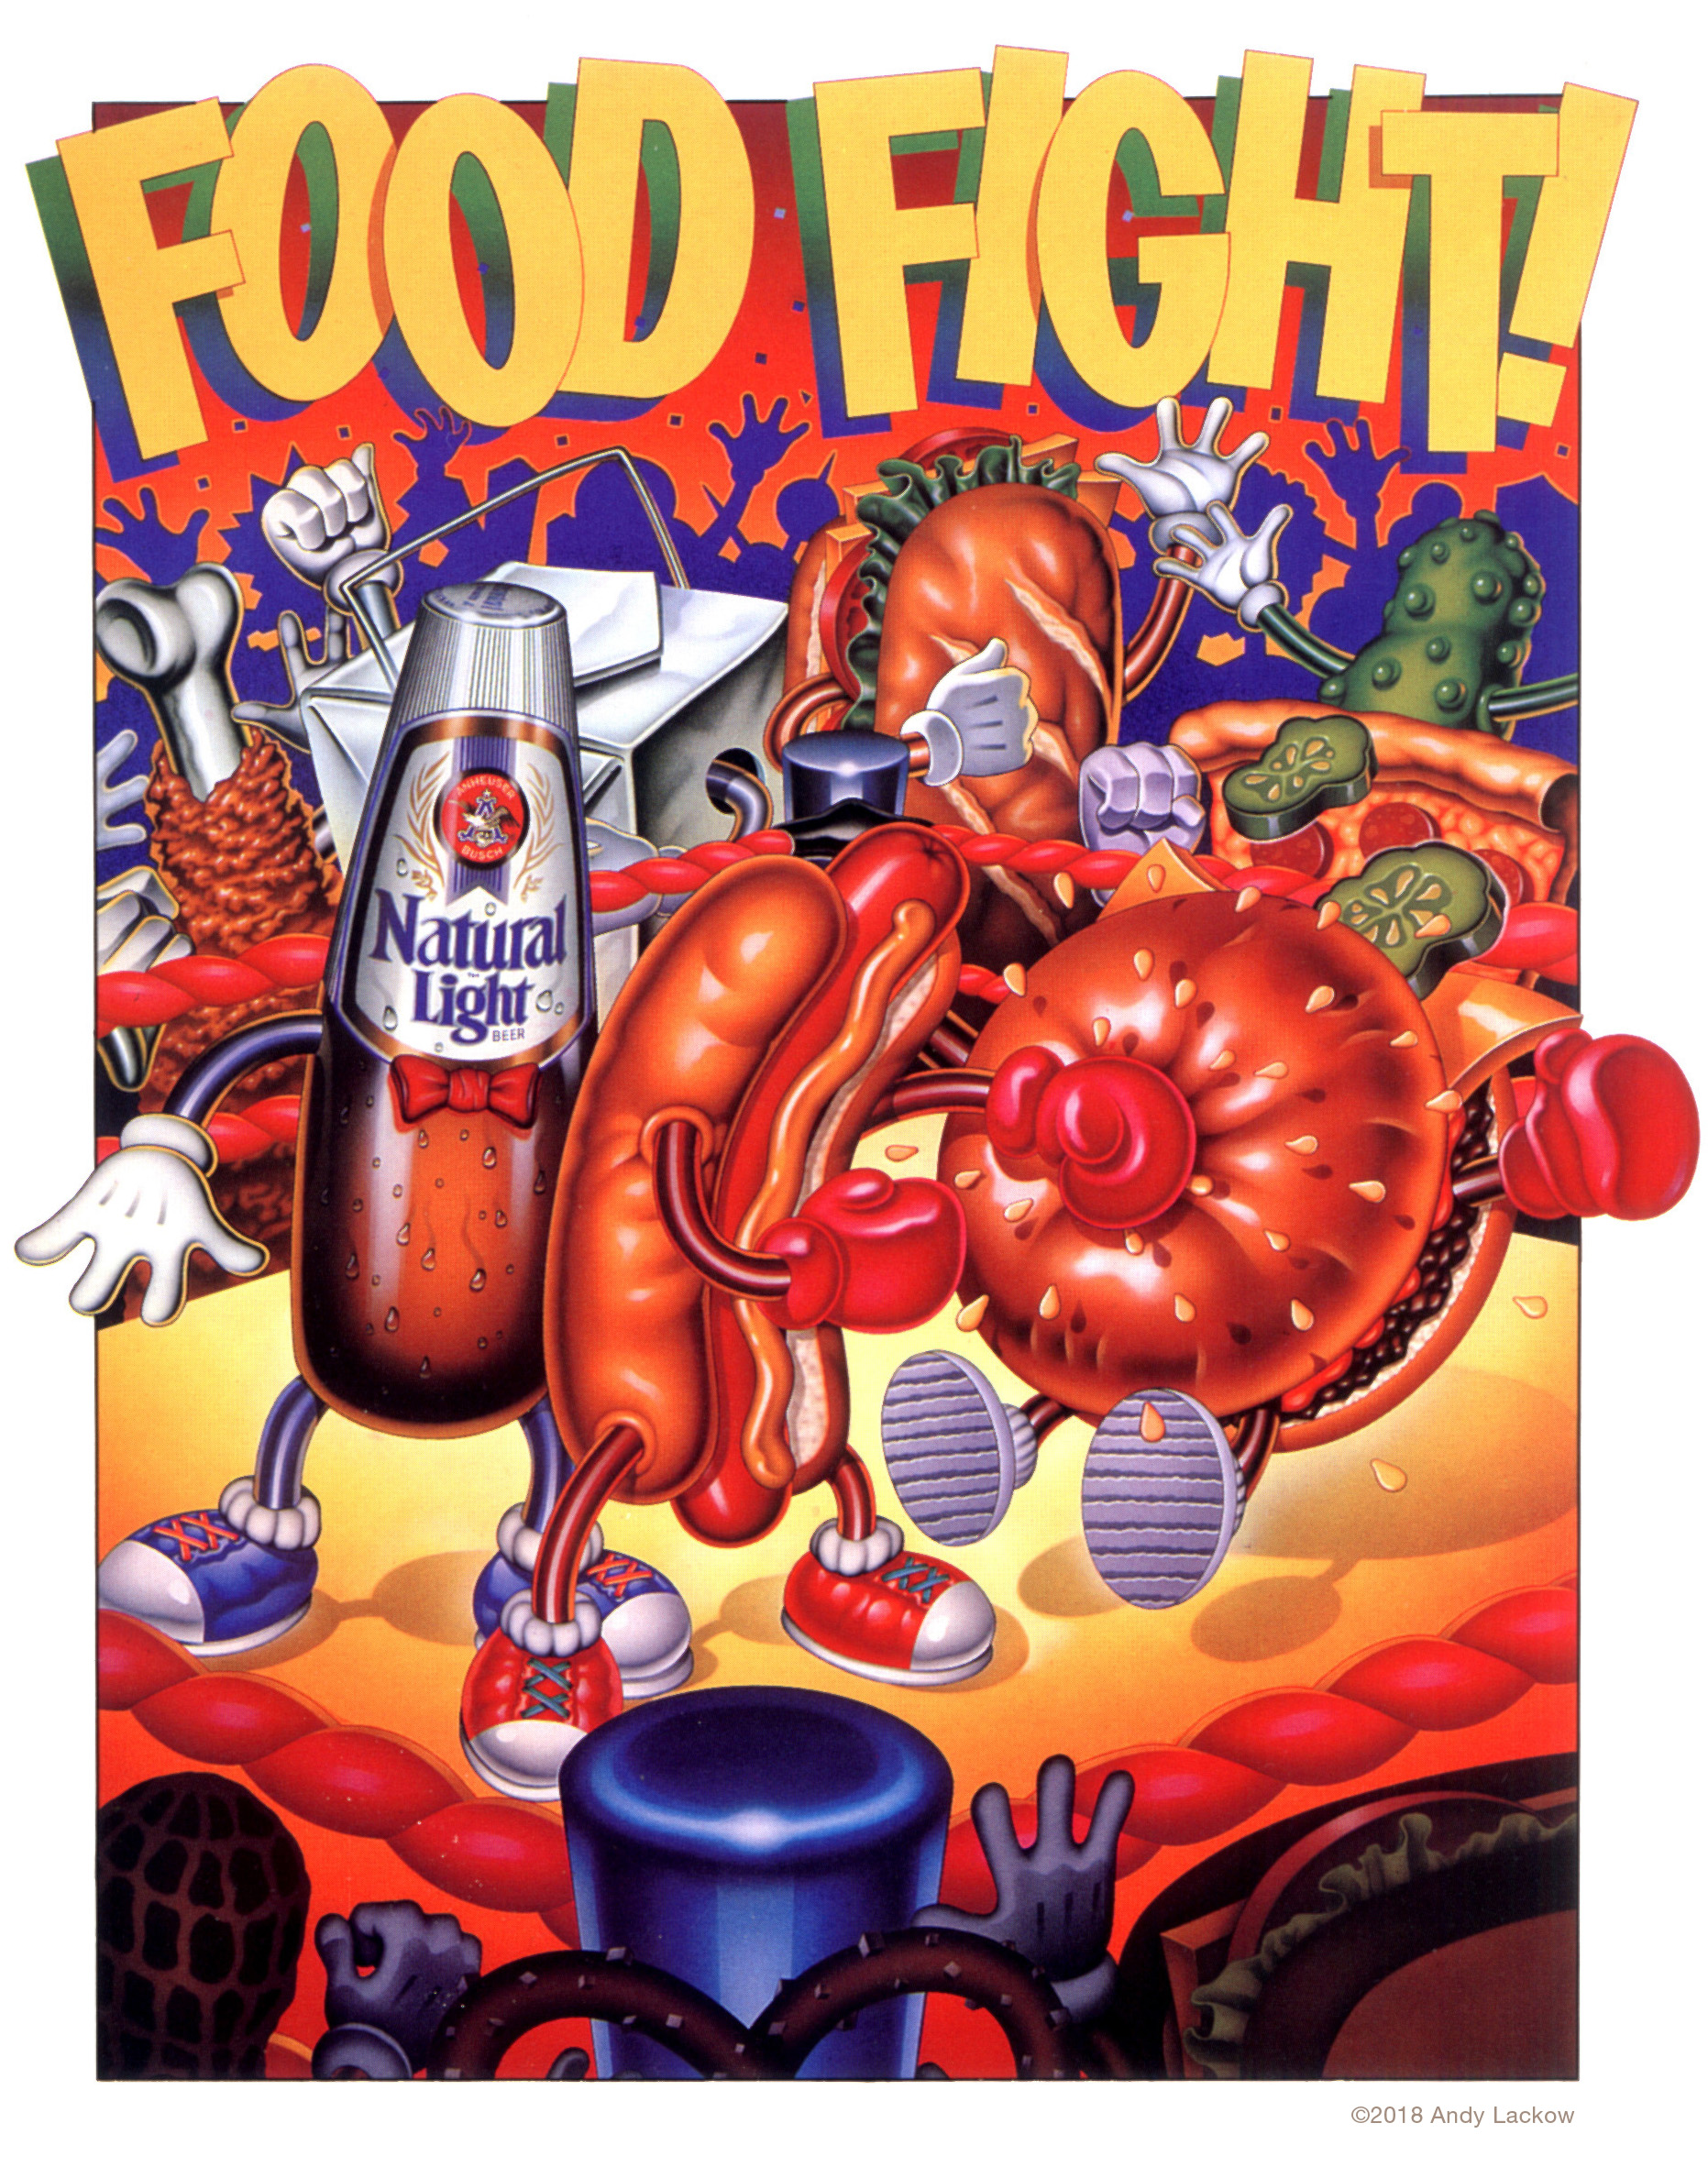 Food Fight - Anheuser Busch